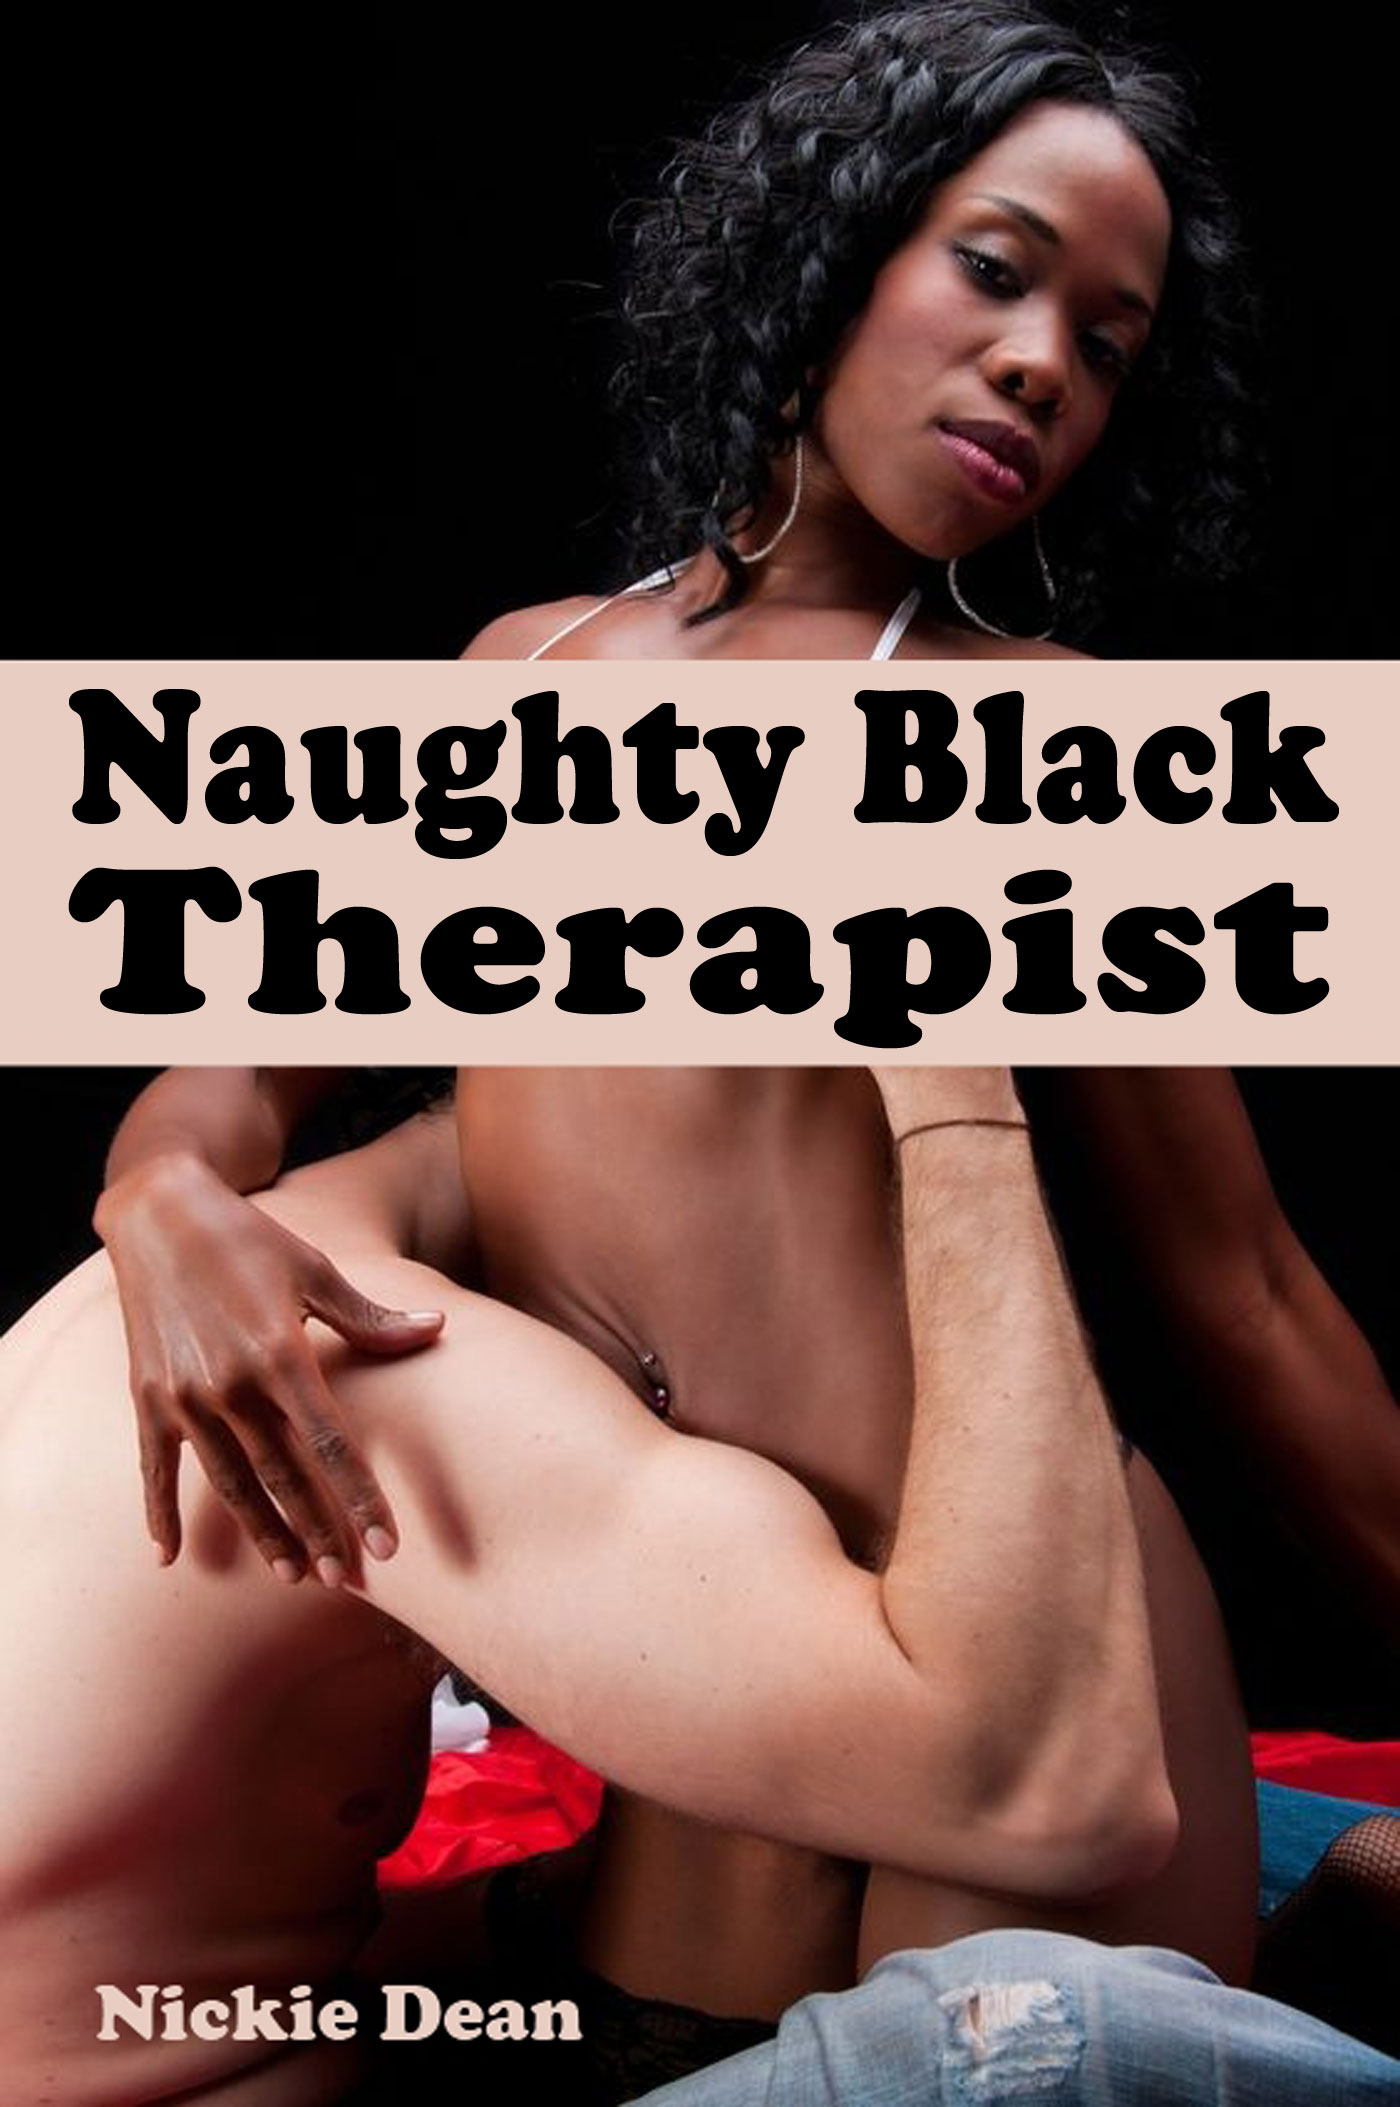 Erotic story of sex therapy